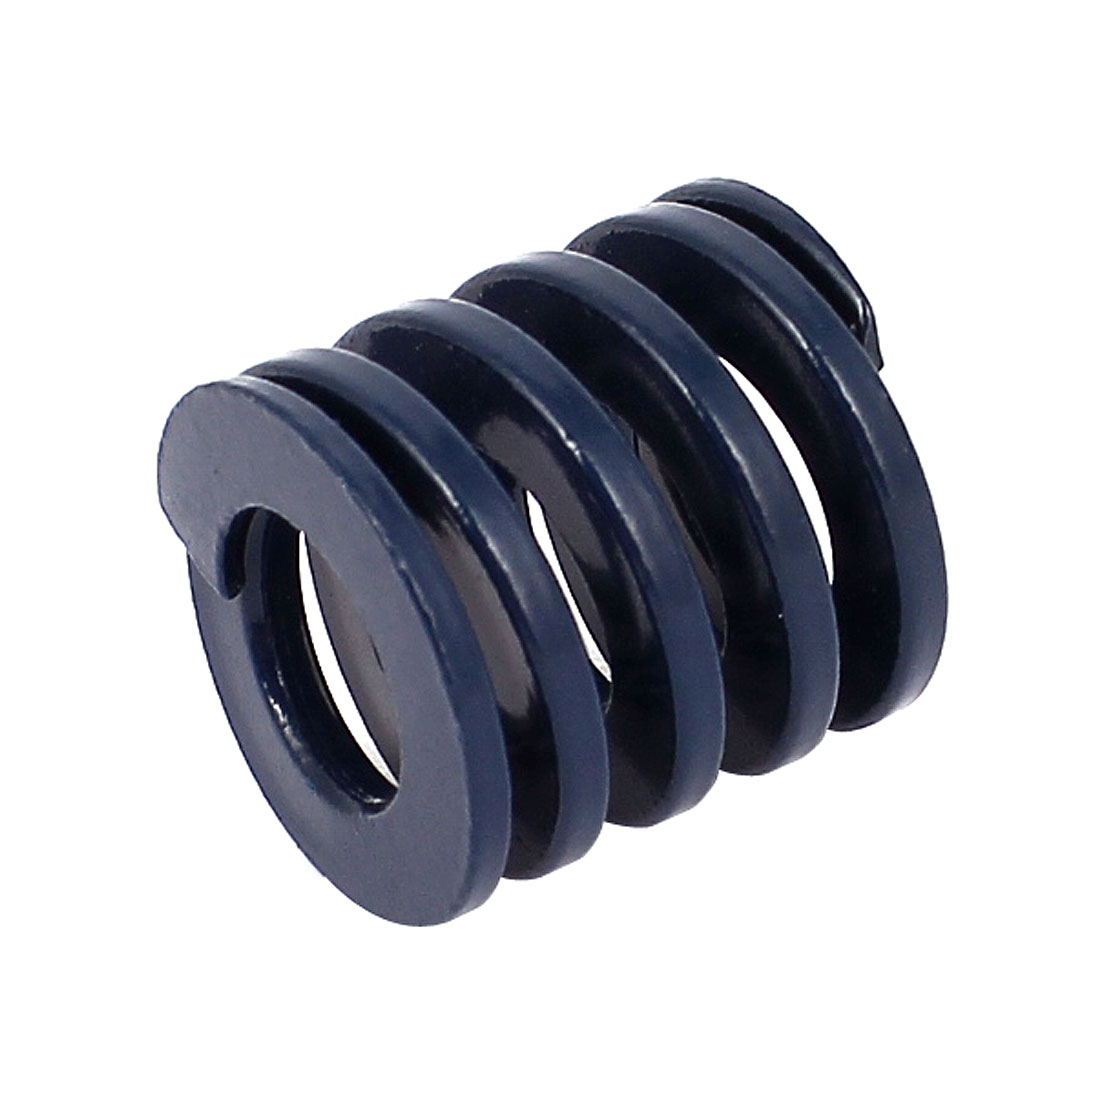 20mm OD 20mm Long Coil Light Load Stamping Compression Mold Die Spring Blue